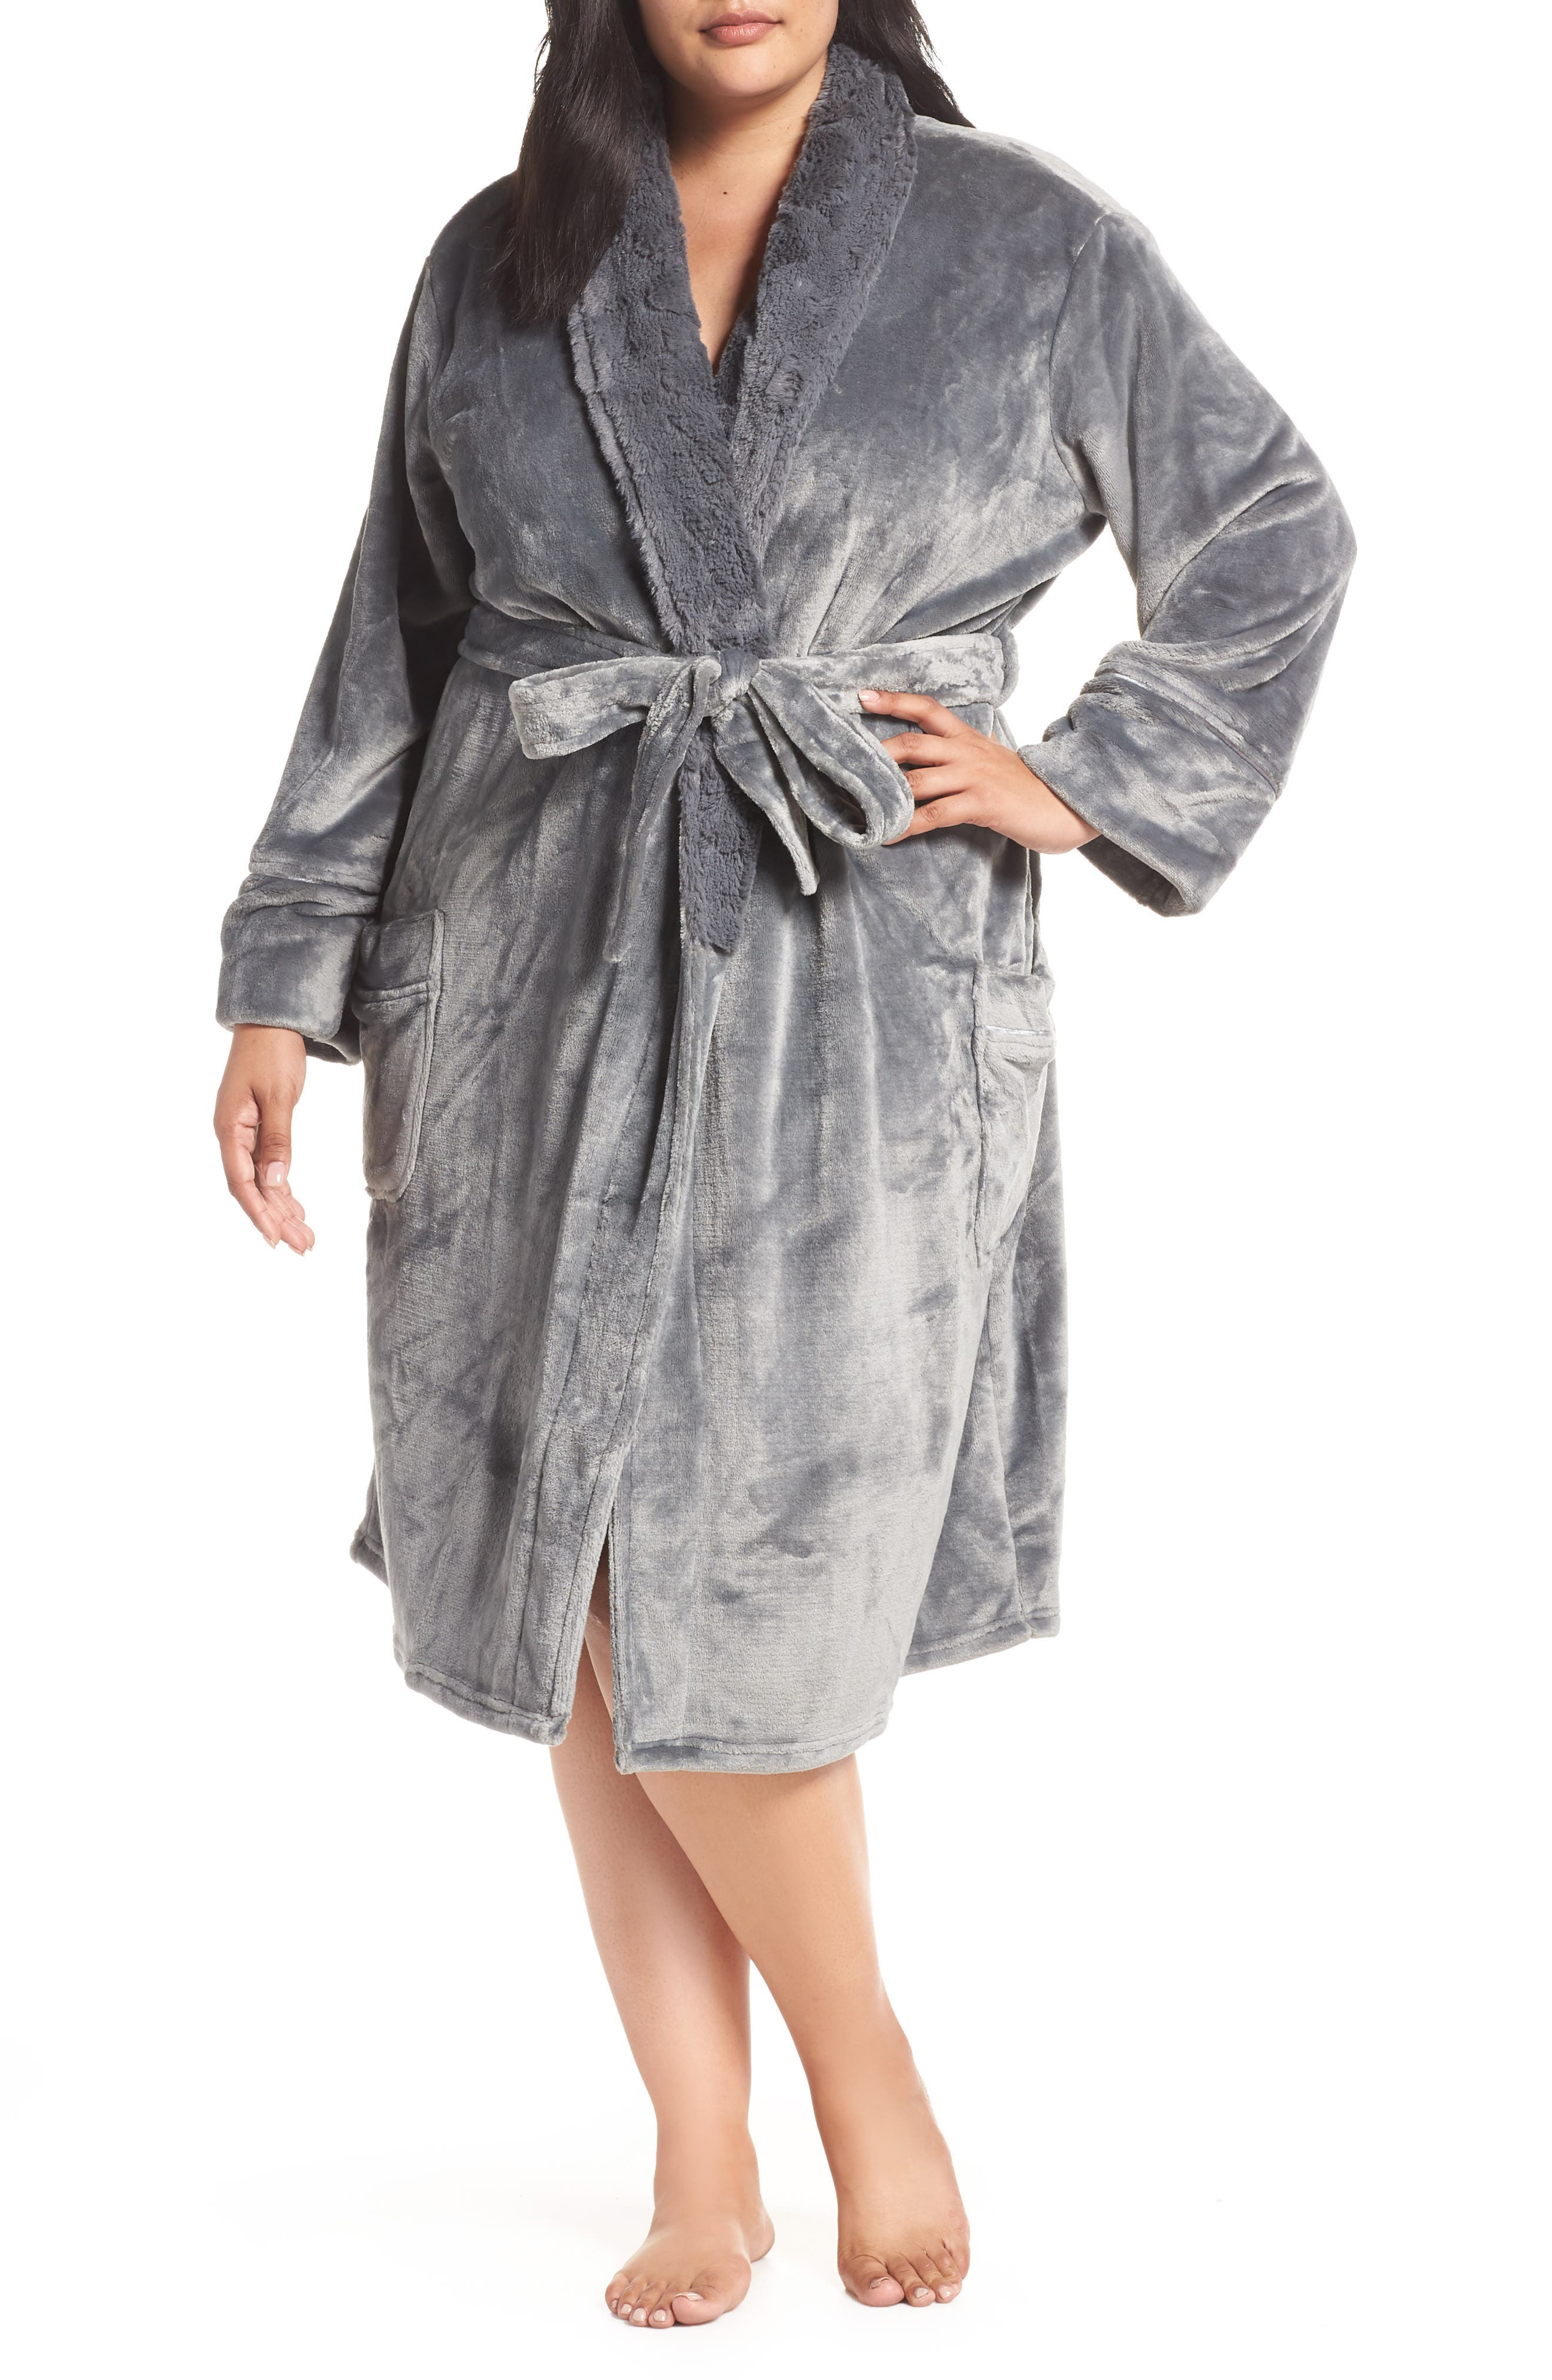 Luxe Faux Fur Robe by Pj Salvage